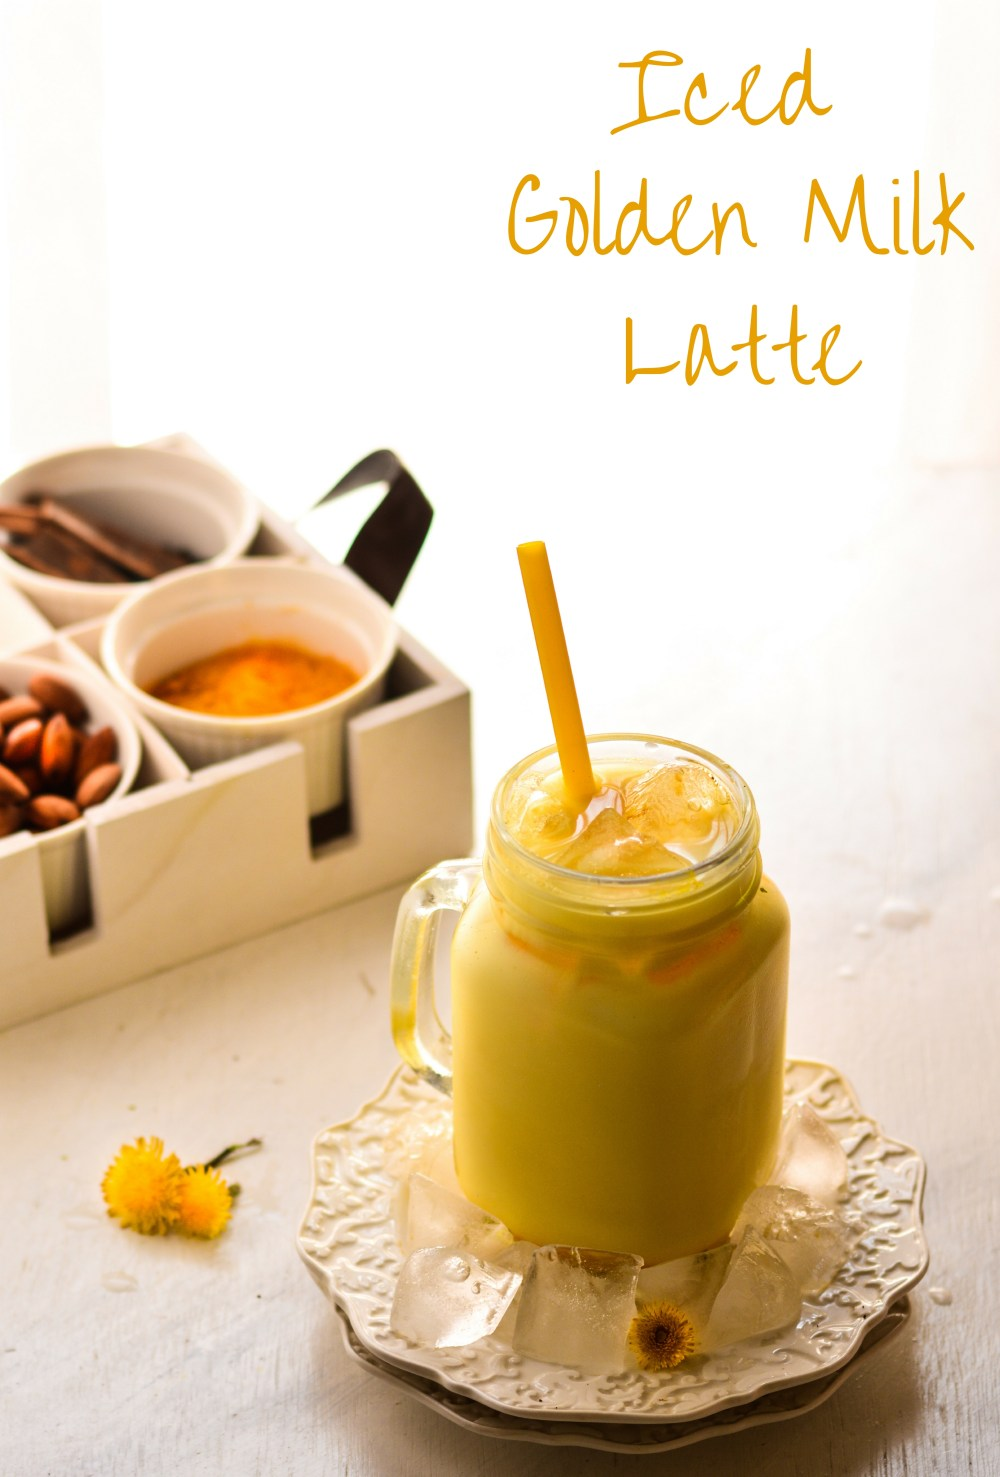 Iced Golden Milk Latte